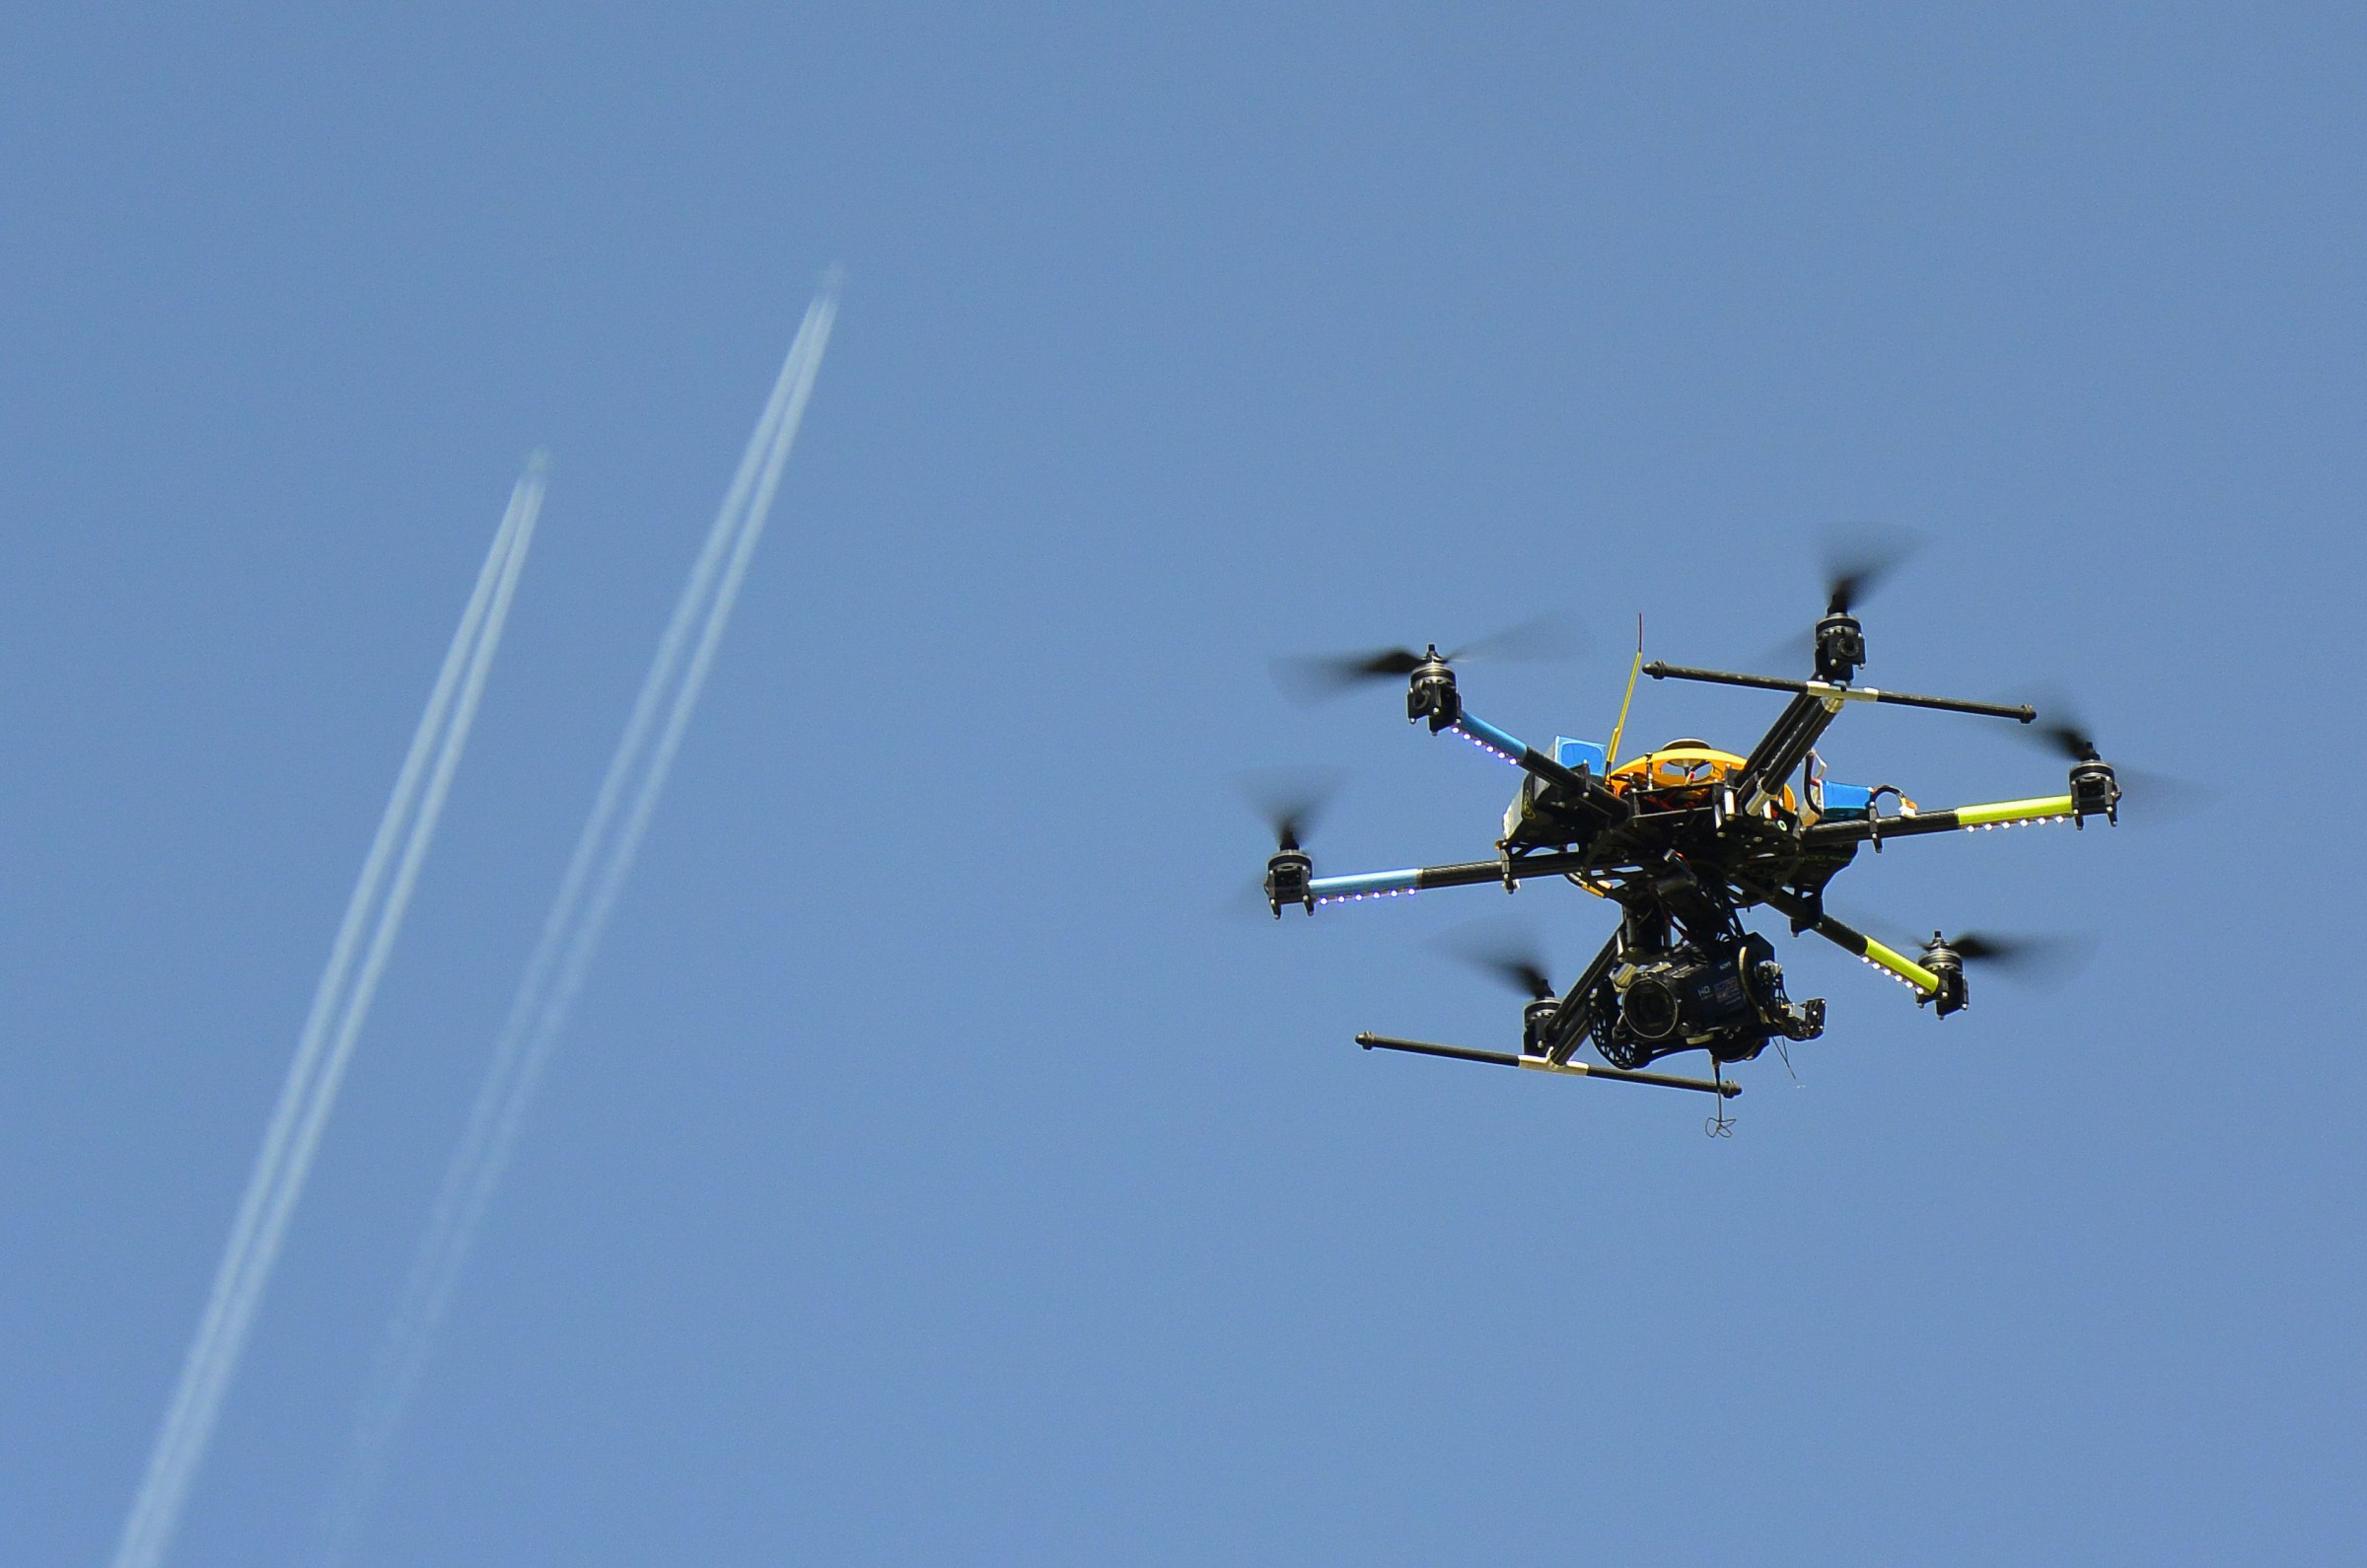 An octocopter (a drone with eight rotors) hovers in front of vapour trails left by aircrafts during a presentation, to showcase the potential use of drones in the video and photography industries, in Pirnice, May 14, 2013.  REUTERS/Srdjan Zivulovic (SLOVENIA - Tags: TRANSPORT MEDIA SCIENCE TECHNOLOGY) - RTXZLX8